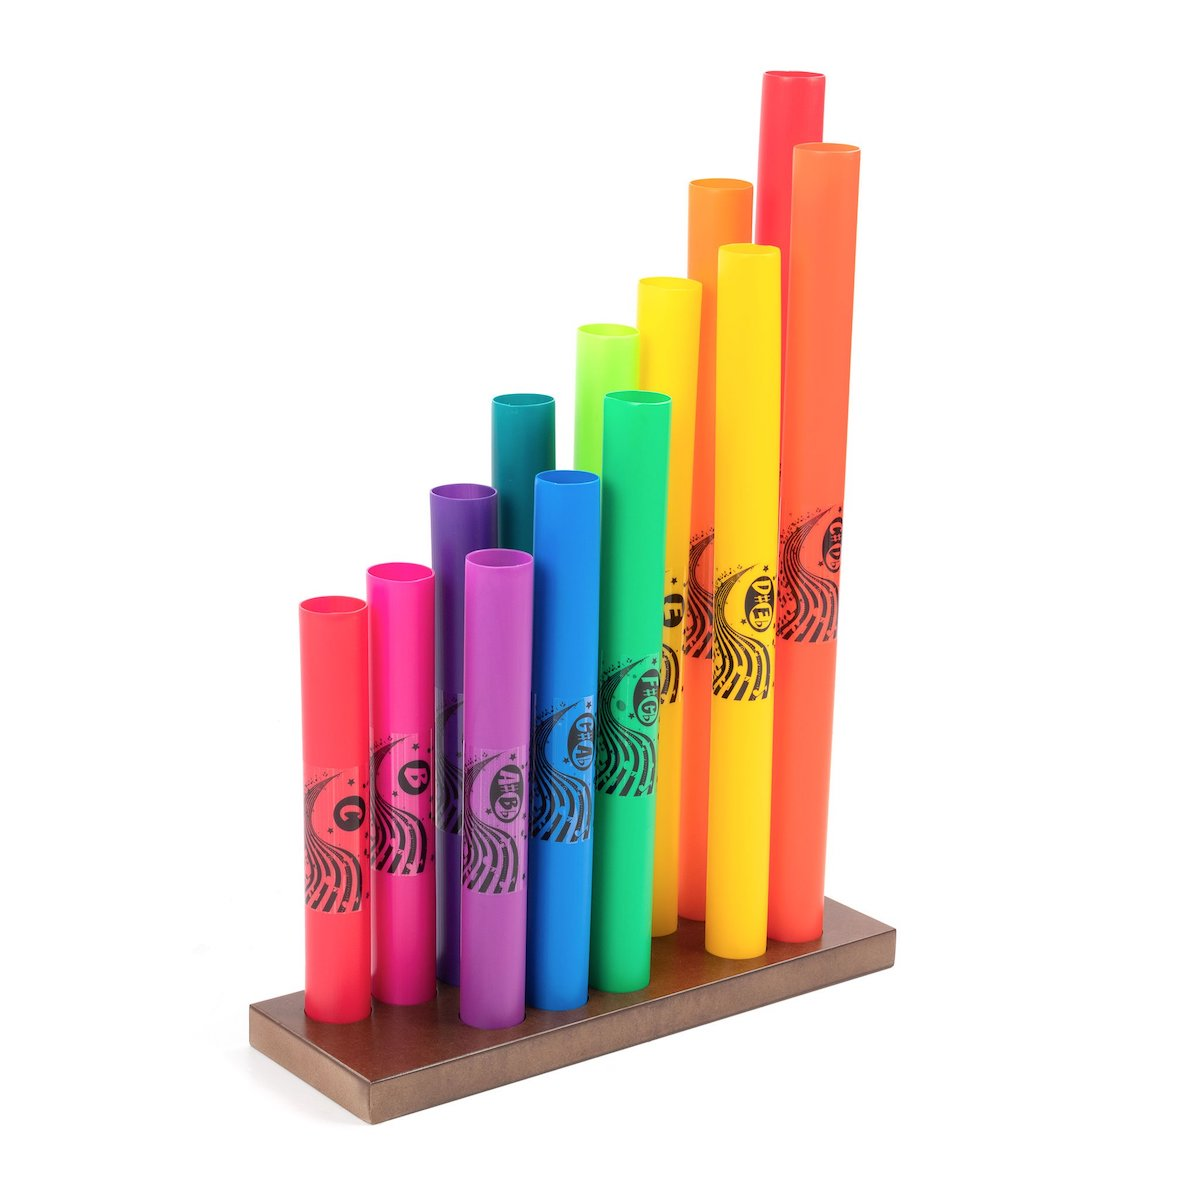 Wak-a-Tubes Stand - holds up to 13 tubes